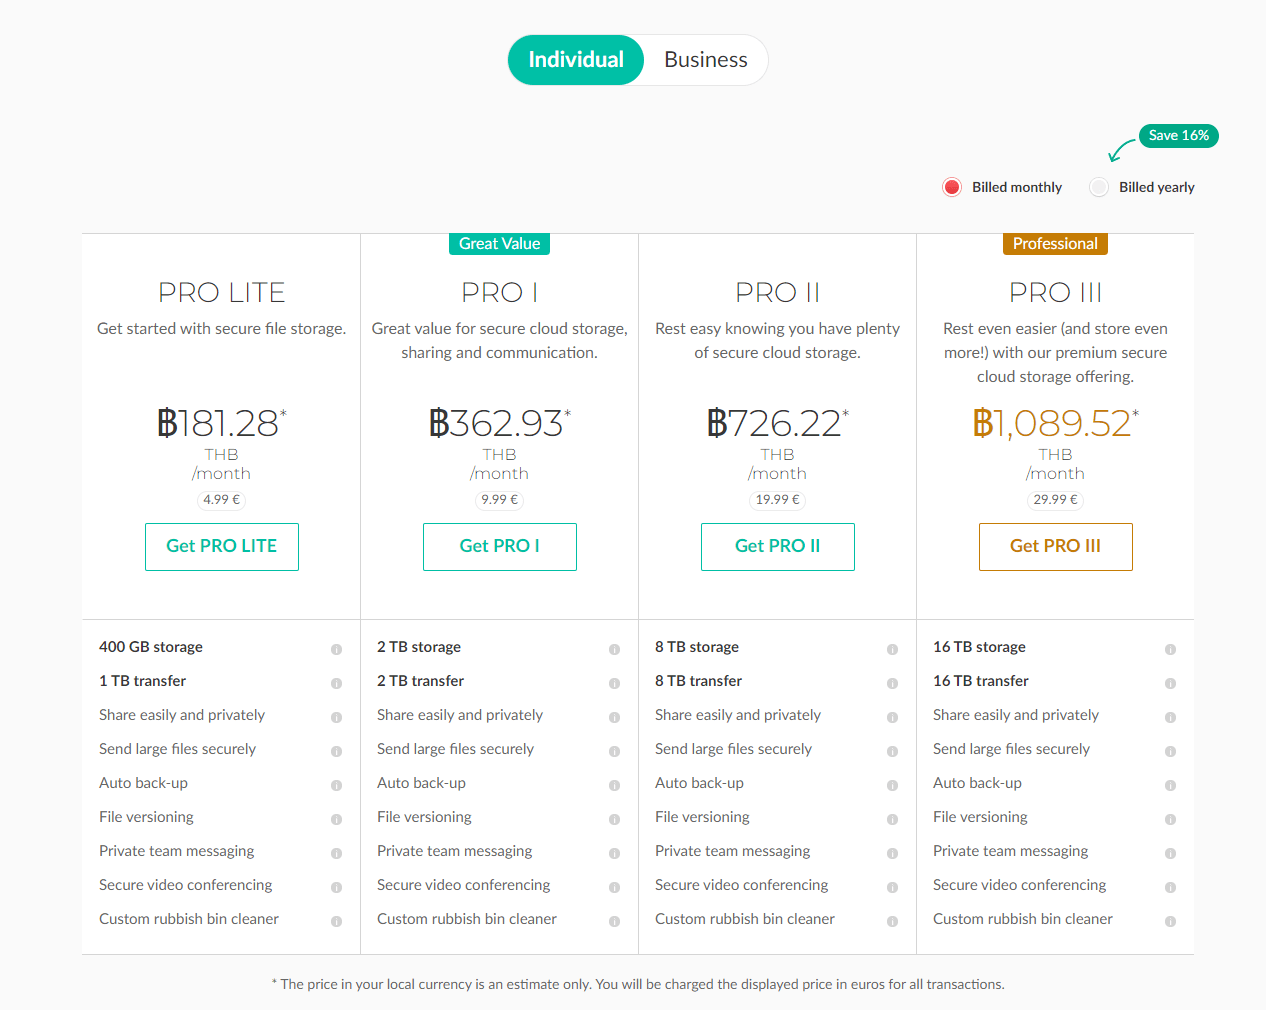 Plans and pricing MEGA